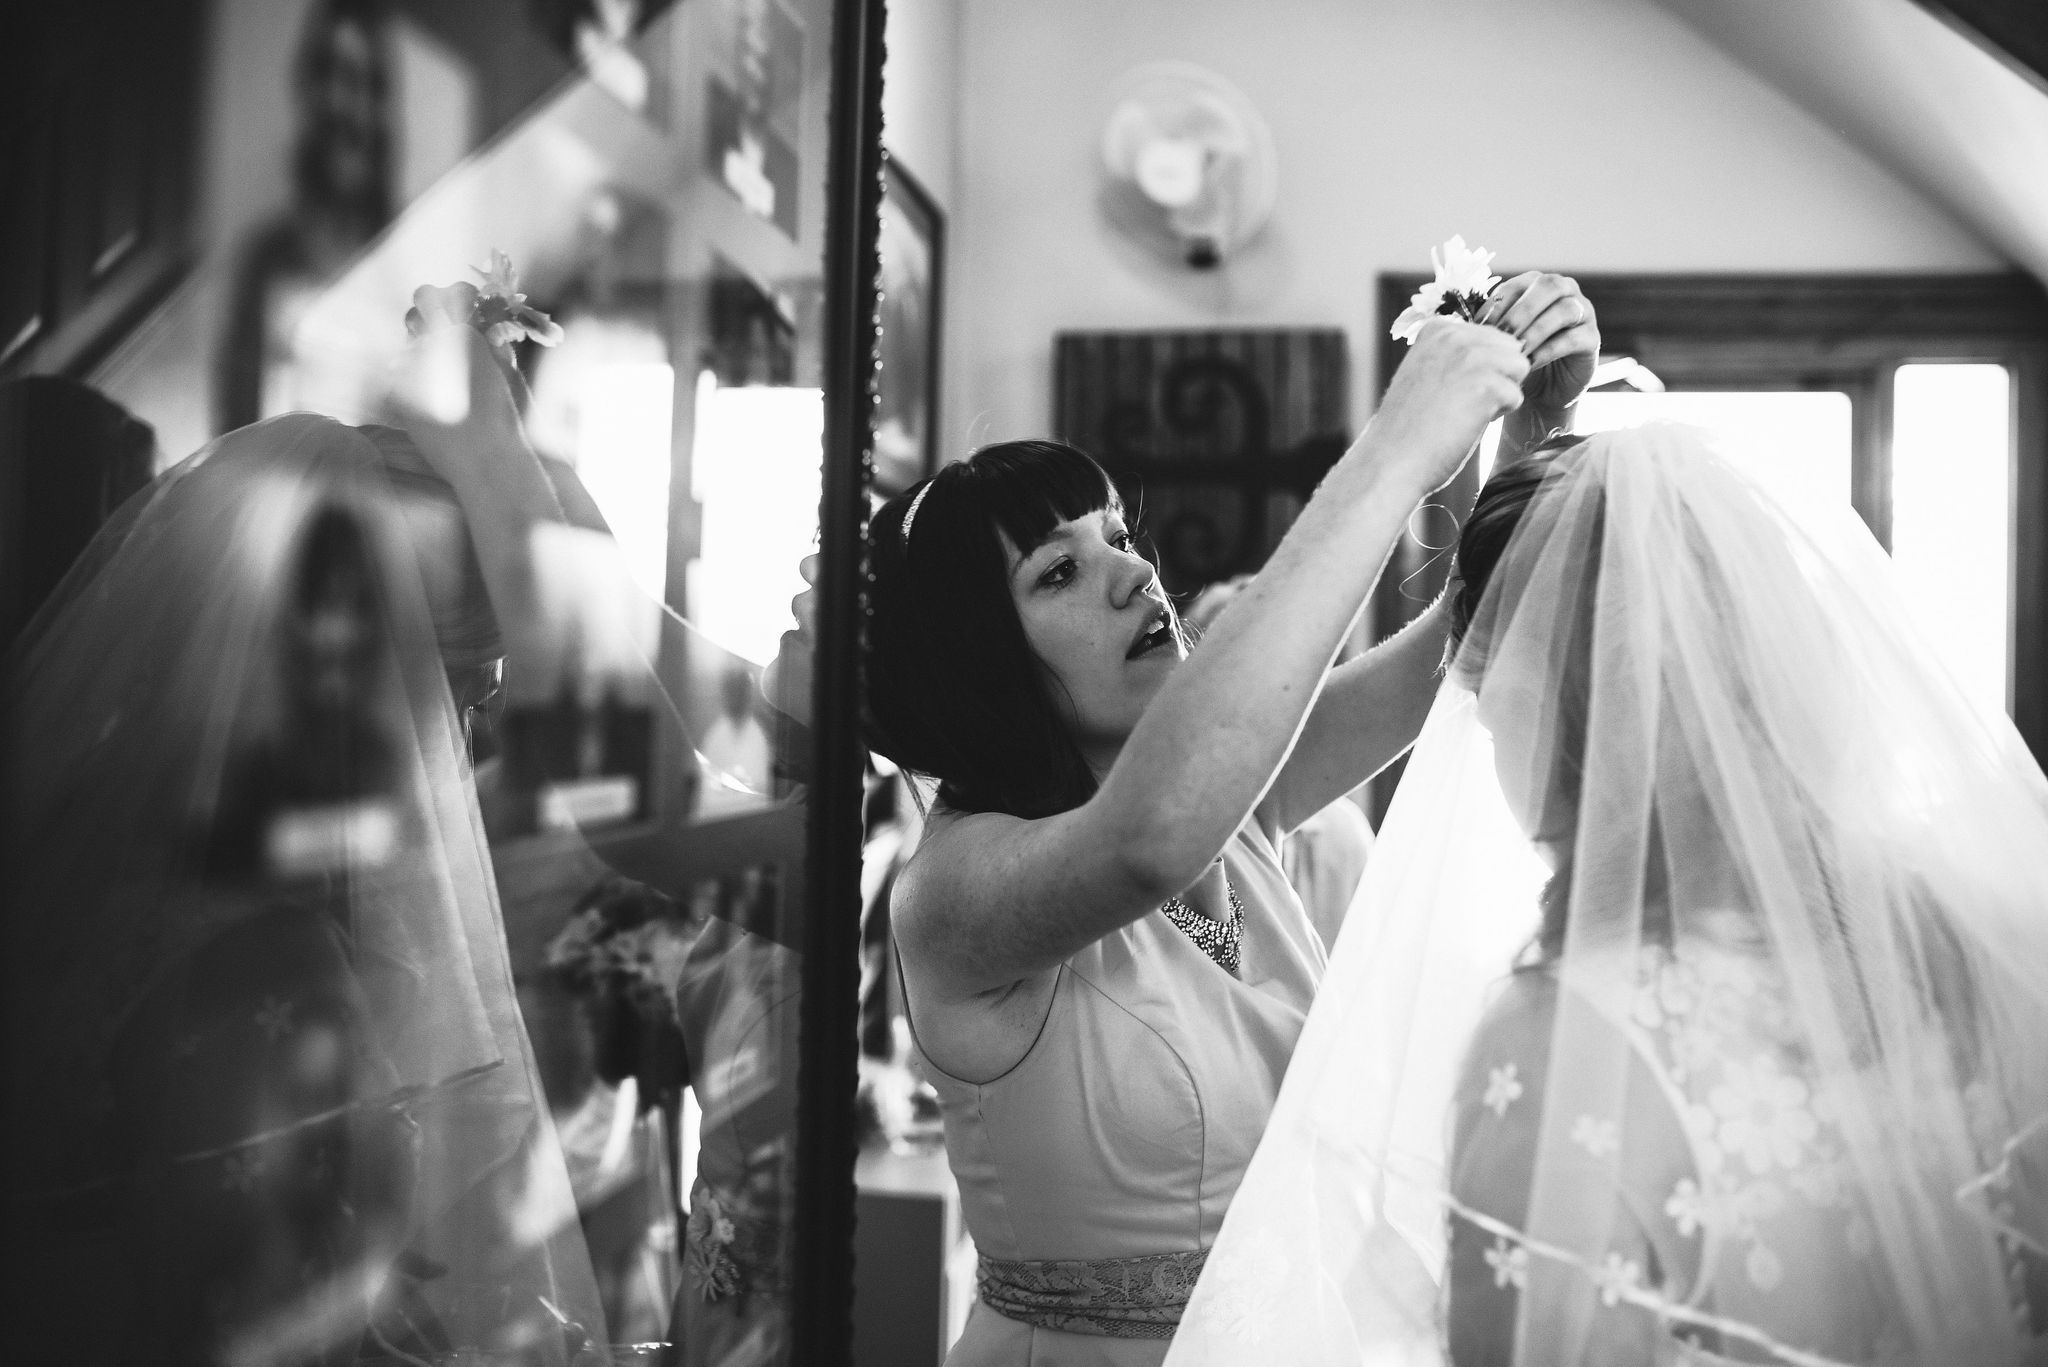 Baltimore, Church Wedding, Maryland Wedding Photographer, Vintage, Classic, Bride with Bridesmaid, Finishing Touches, Black and White Photo